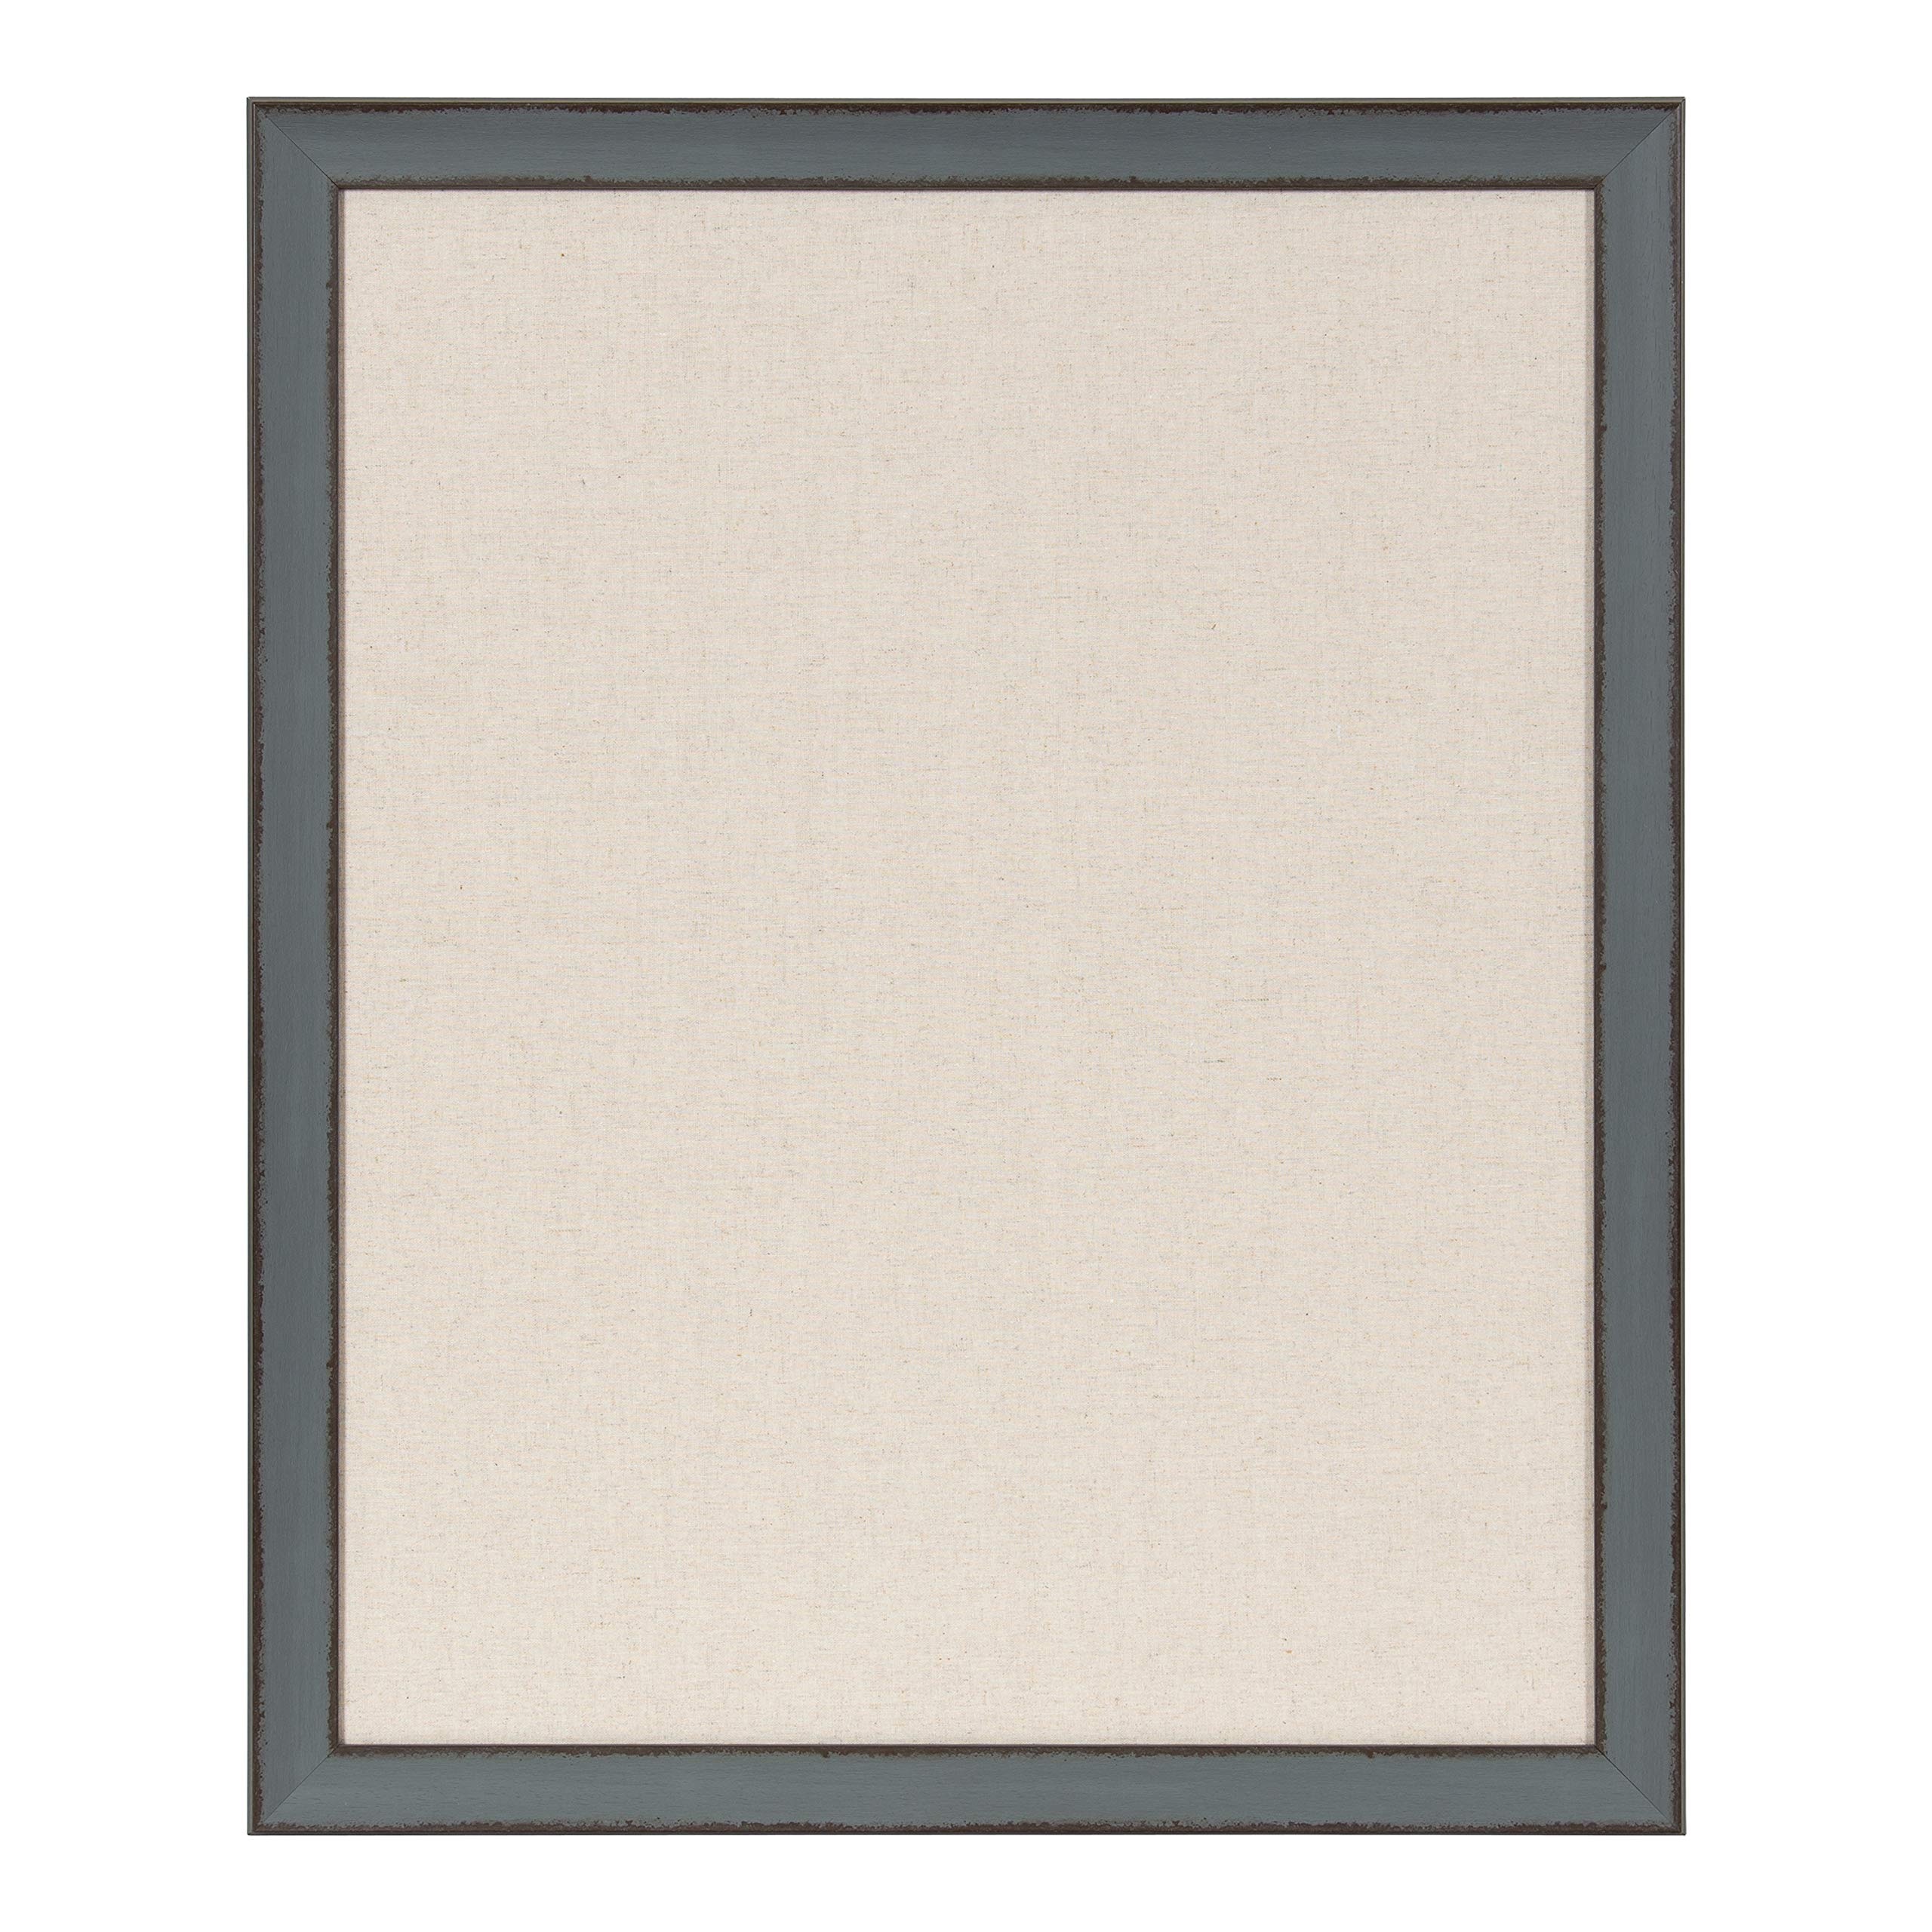 Kate and Laurel Kenwick Framed Linen Fabric Pinboard, 27x33, Gray Green by Kate and Laurel